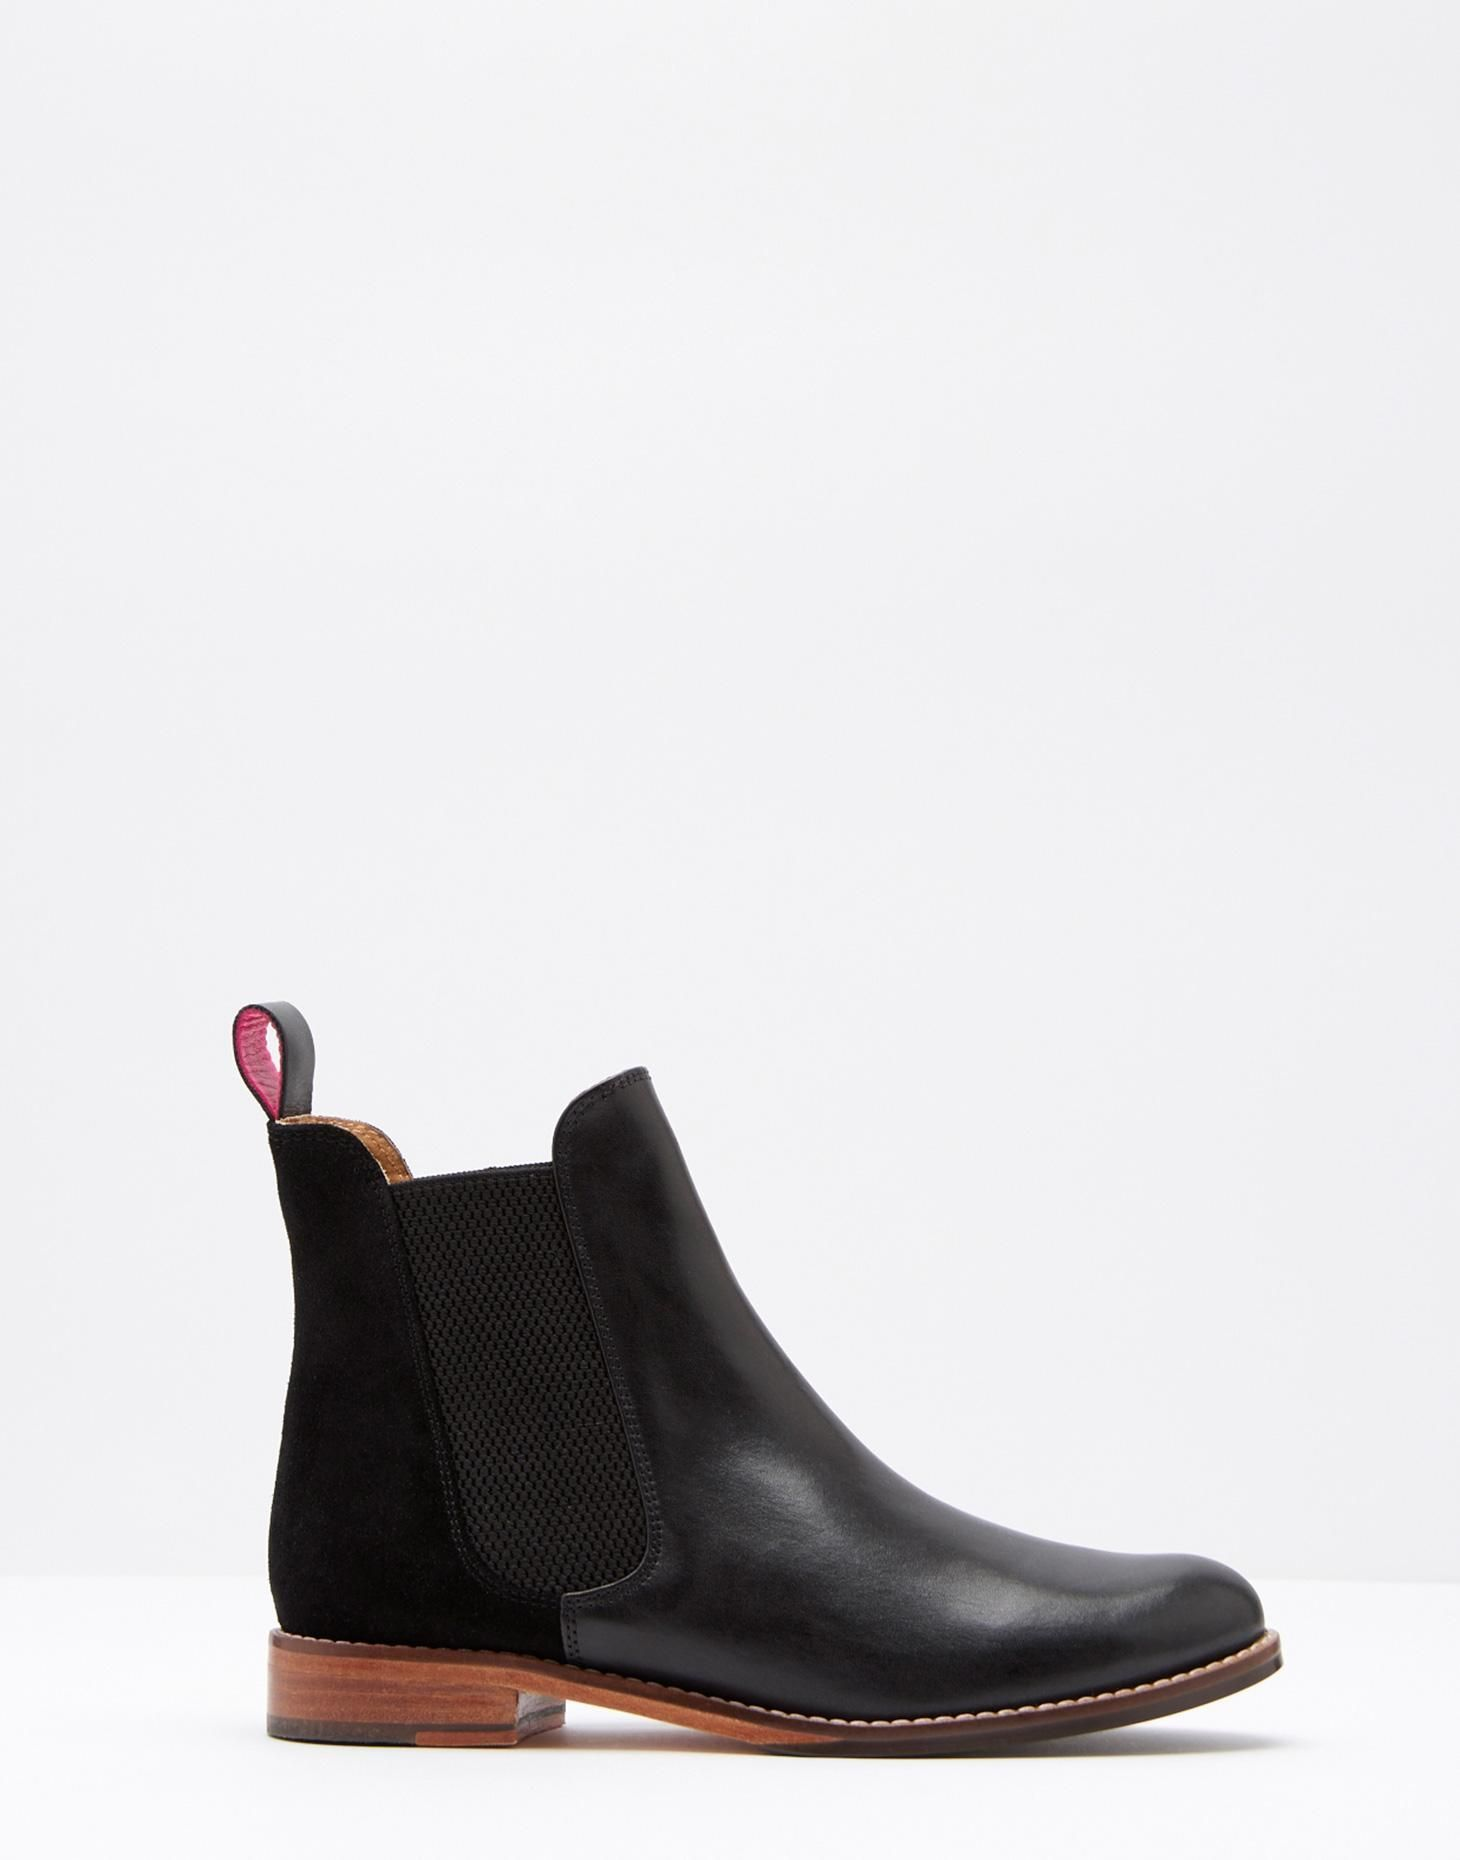 Zapatos negros Joules para mujer 1DuutO3F